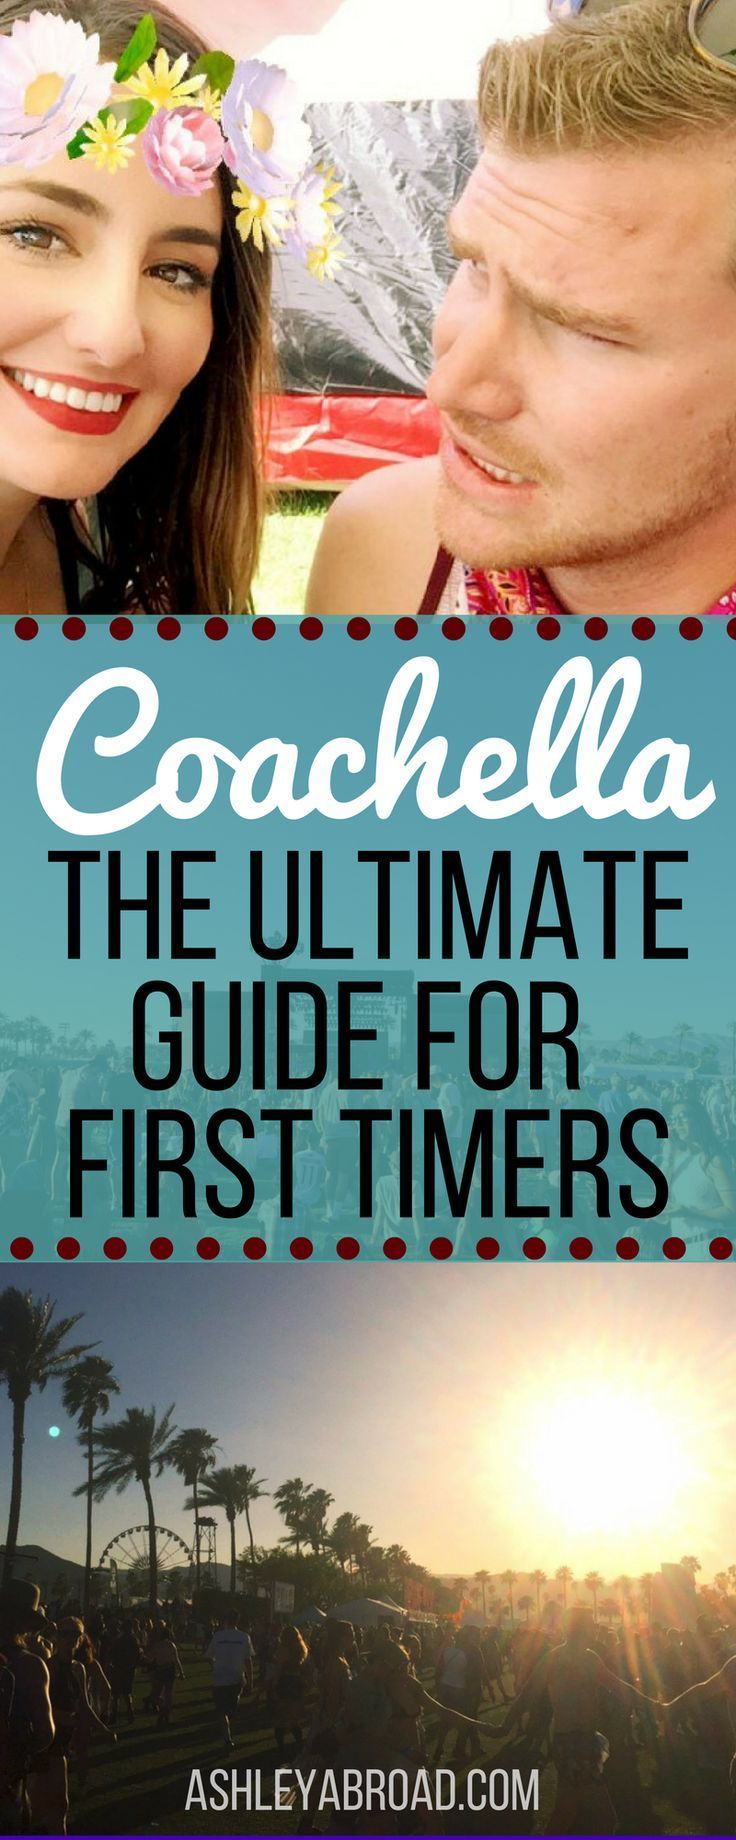 Coachella was one of the most fun weekends of my life, and it turned me into a full-blown festival addict. But there are a few things I would have done differently. To help you guys out with planning your first time to Coachella, I wanted to break down everything I navigated as a Coachella first timer: the festival layout, schedule, costs, and the emotional highs and lows. This is my Ultimate Guide  for First Timers to Coachella. | Ashley Abroad